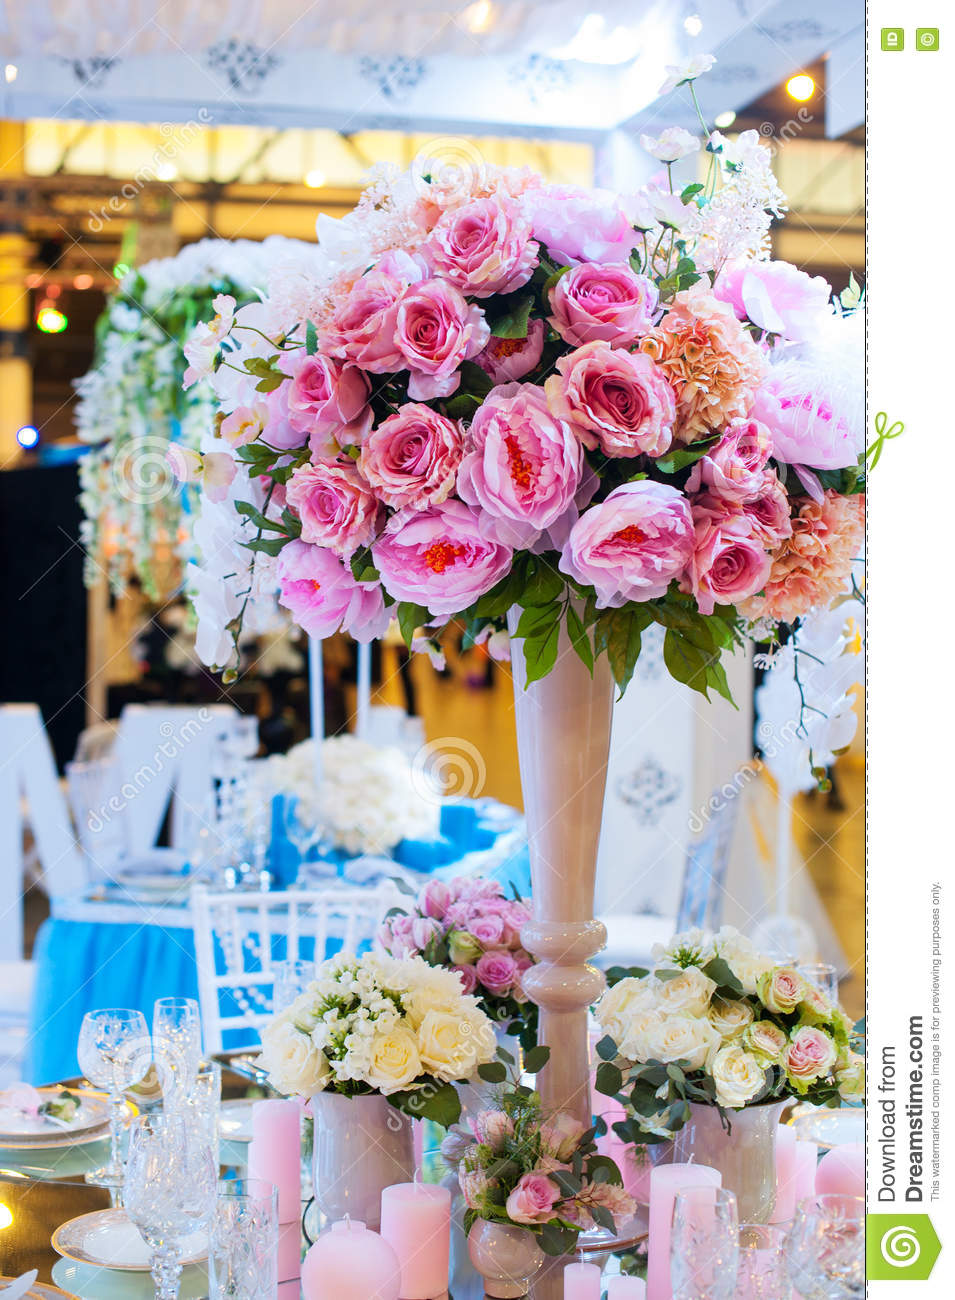 flower decorations for wedding tables beautiful restaurant interior table decoration for wedding 4166